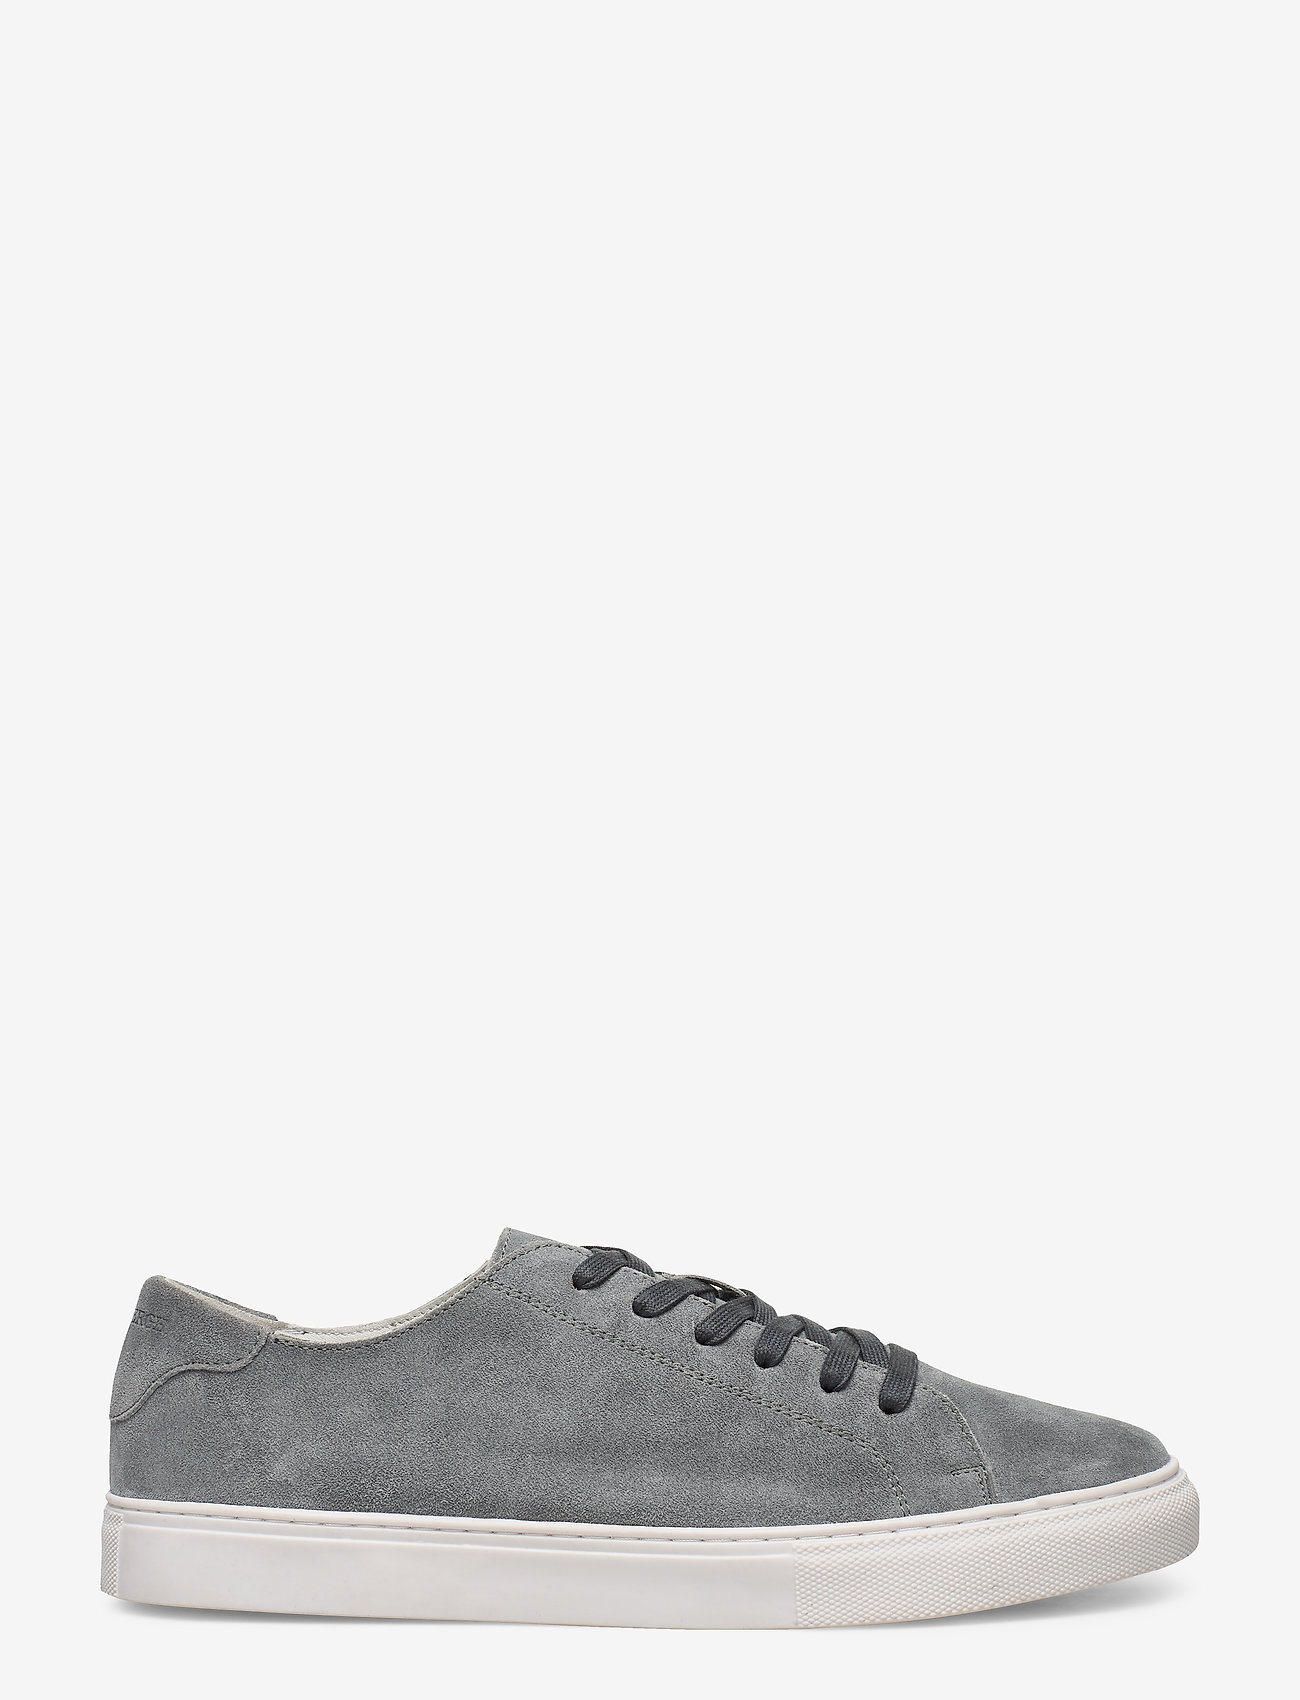 Lindbergh - Suede sneaker - low tops - grey